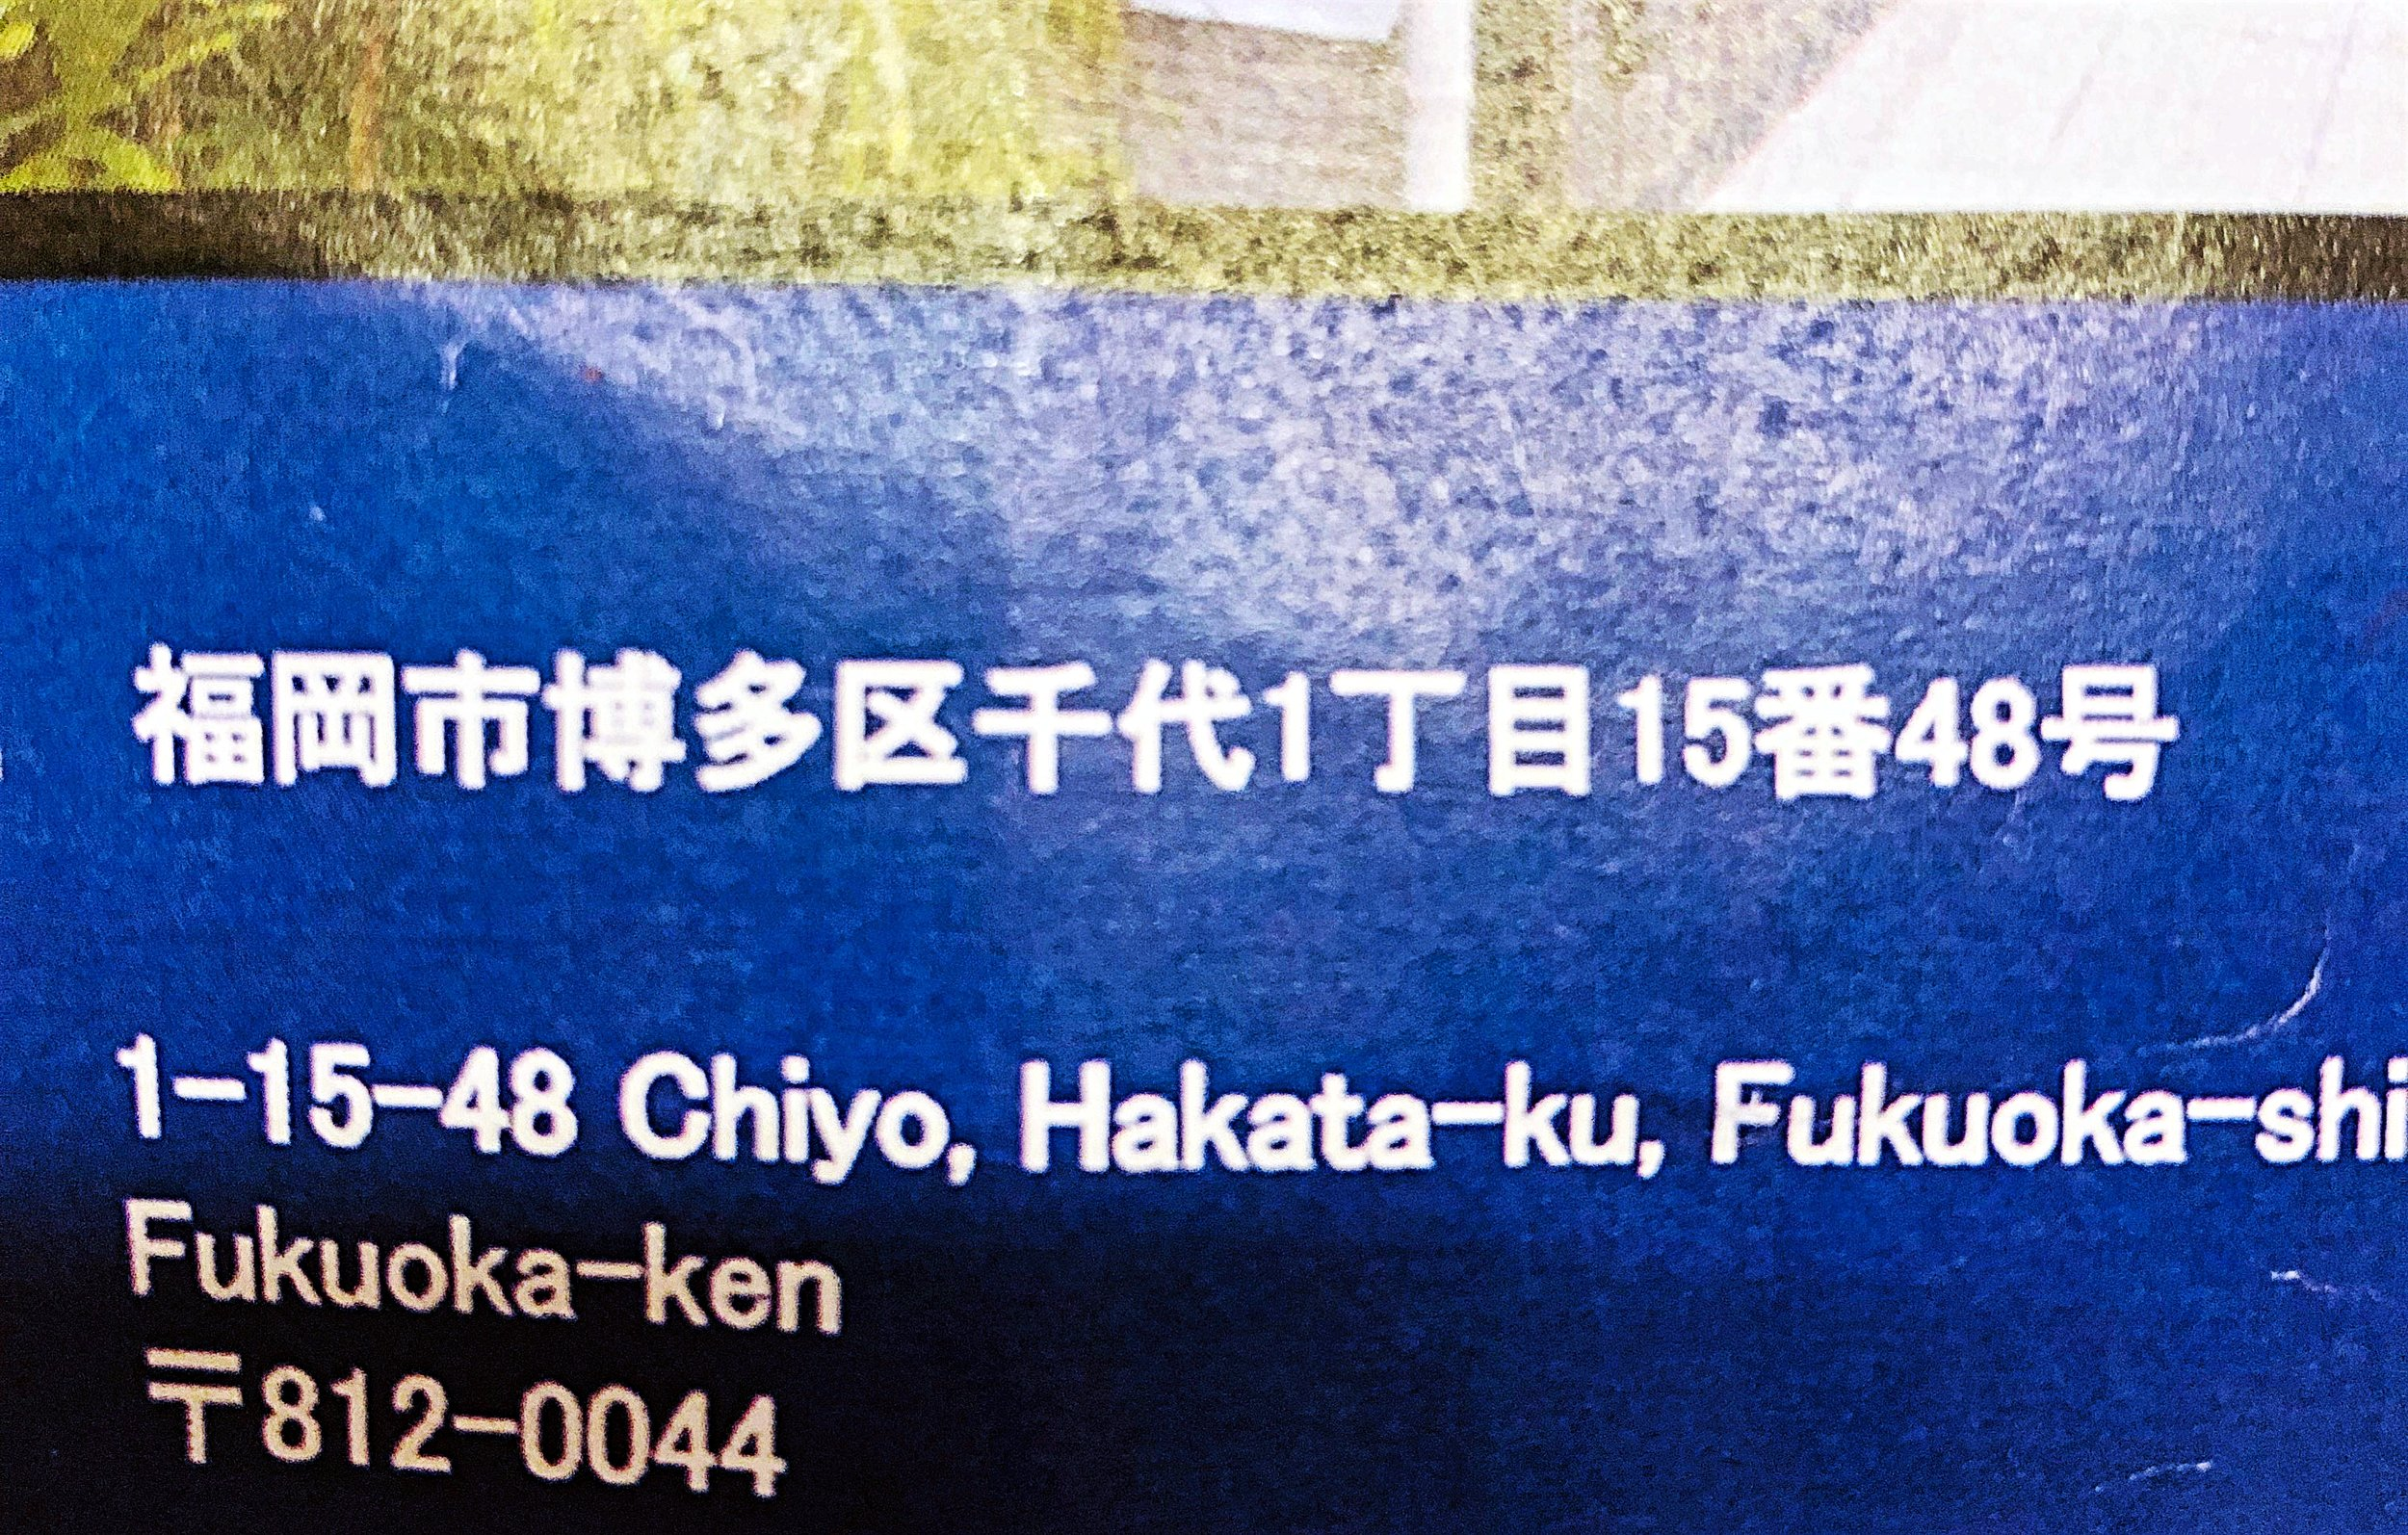 Address written out in Japanese is super helpful when taking a taxi.